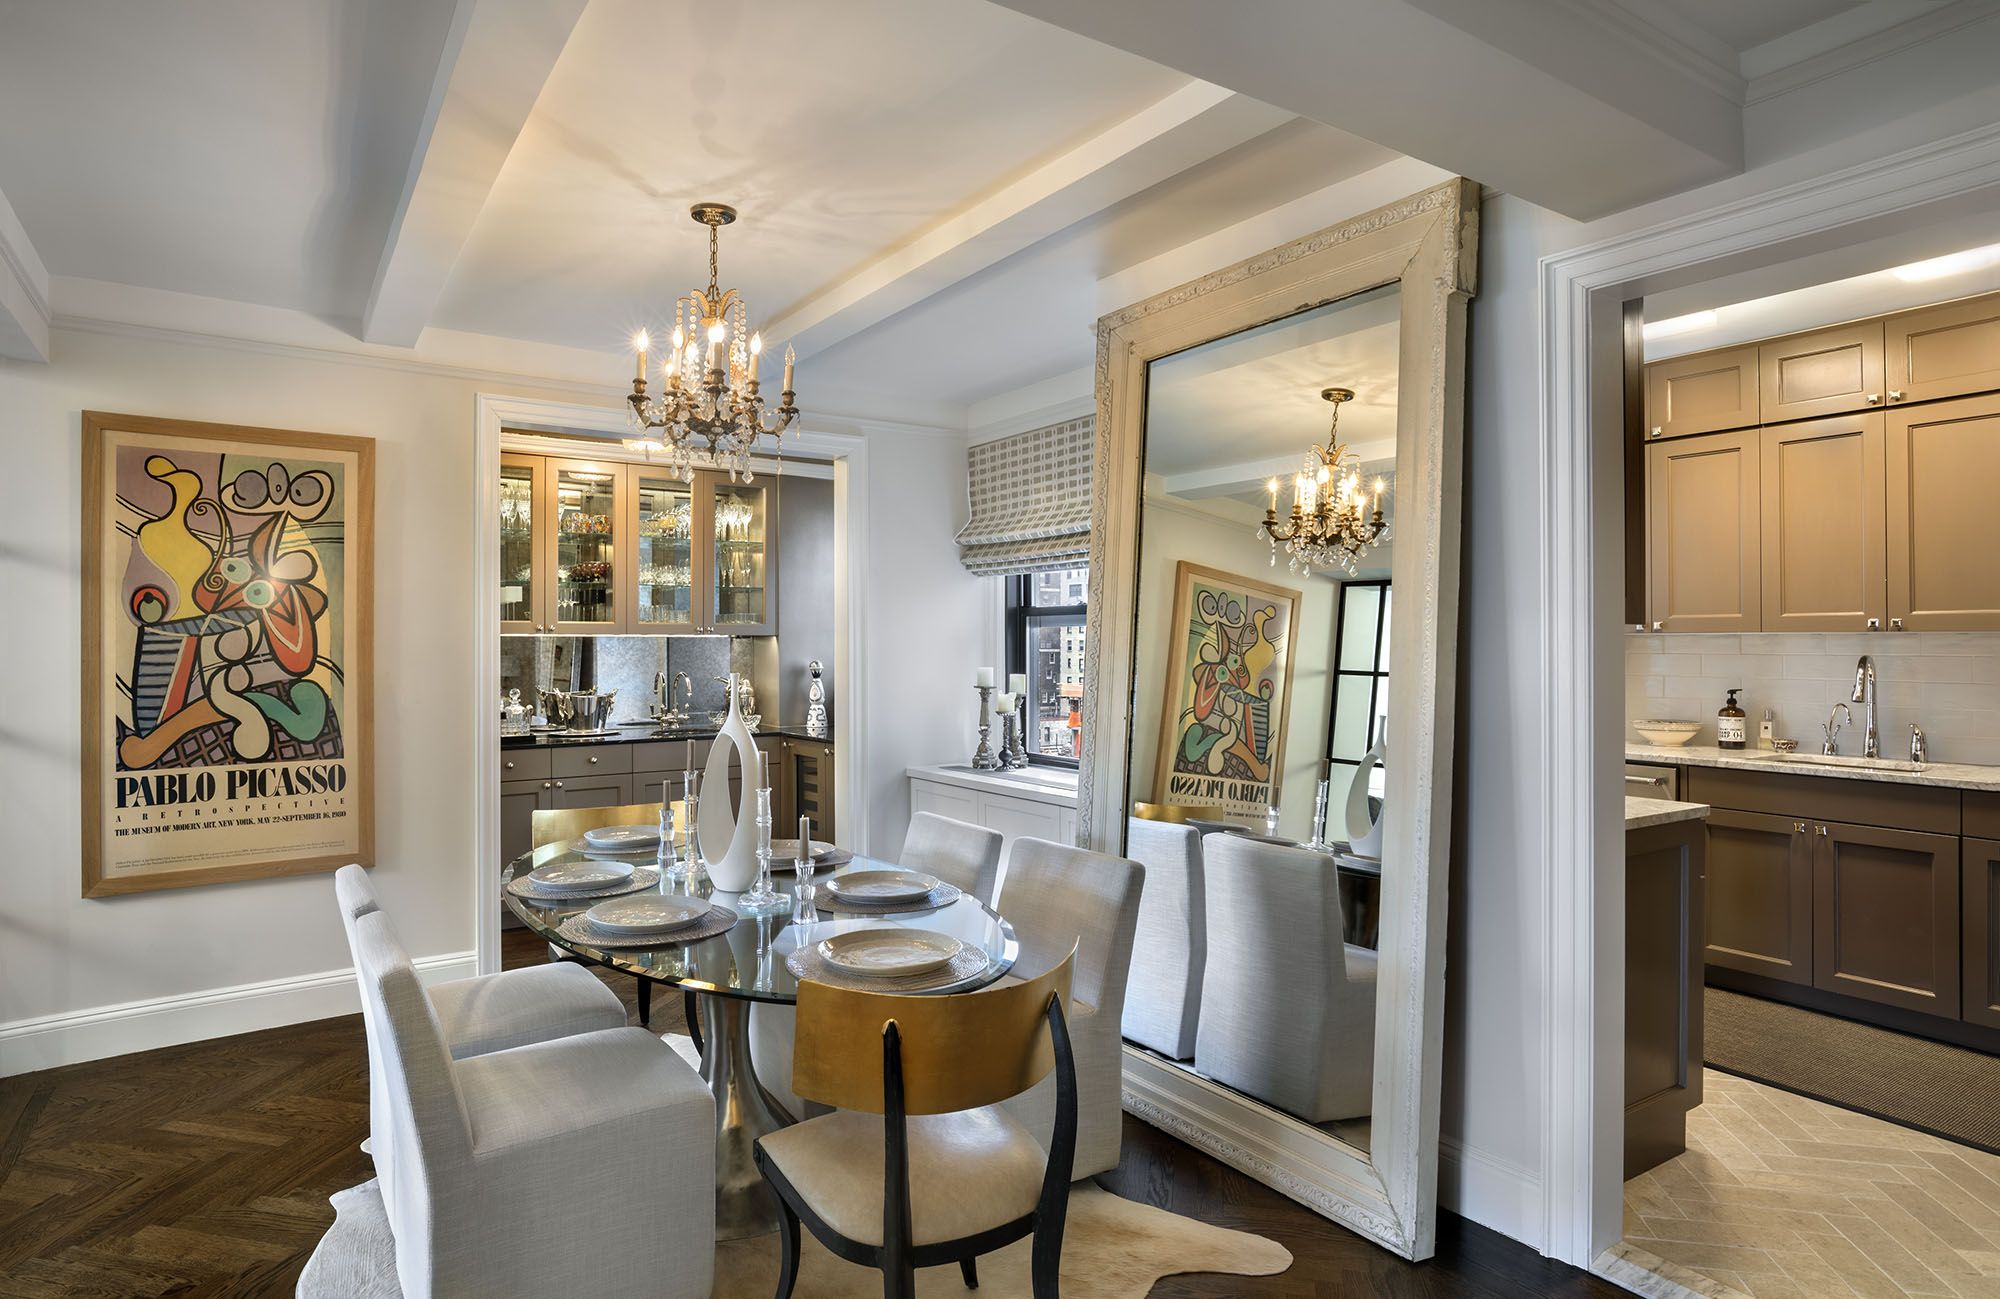 Inside a Chanel Fashion Executive's High-Glam Sutton Place Home